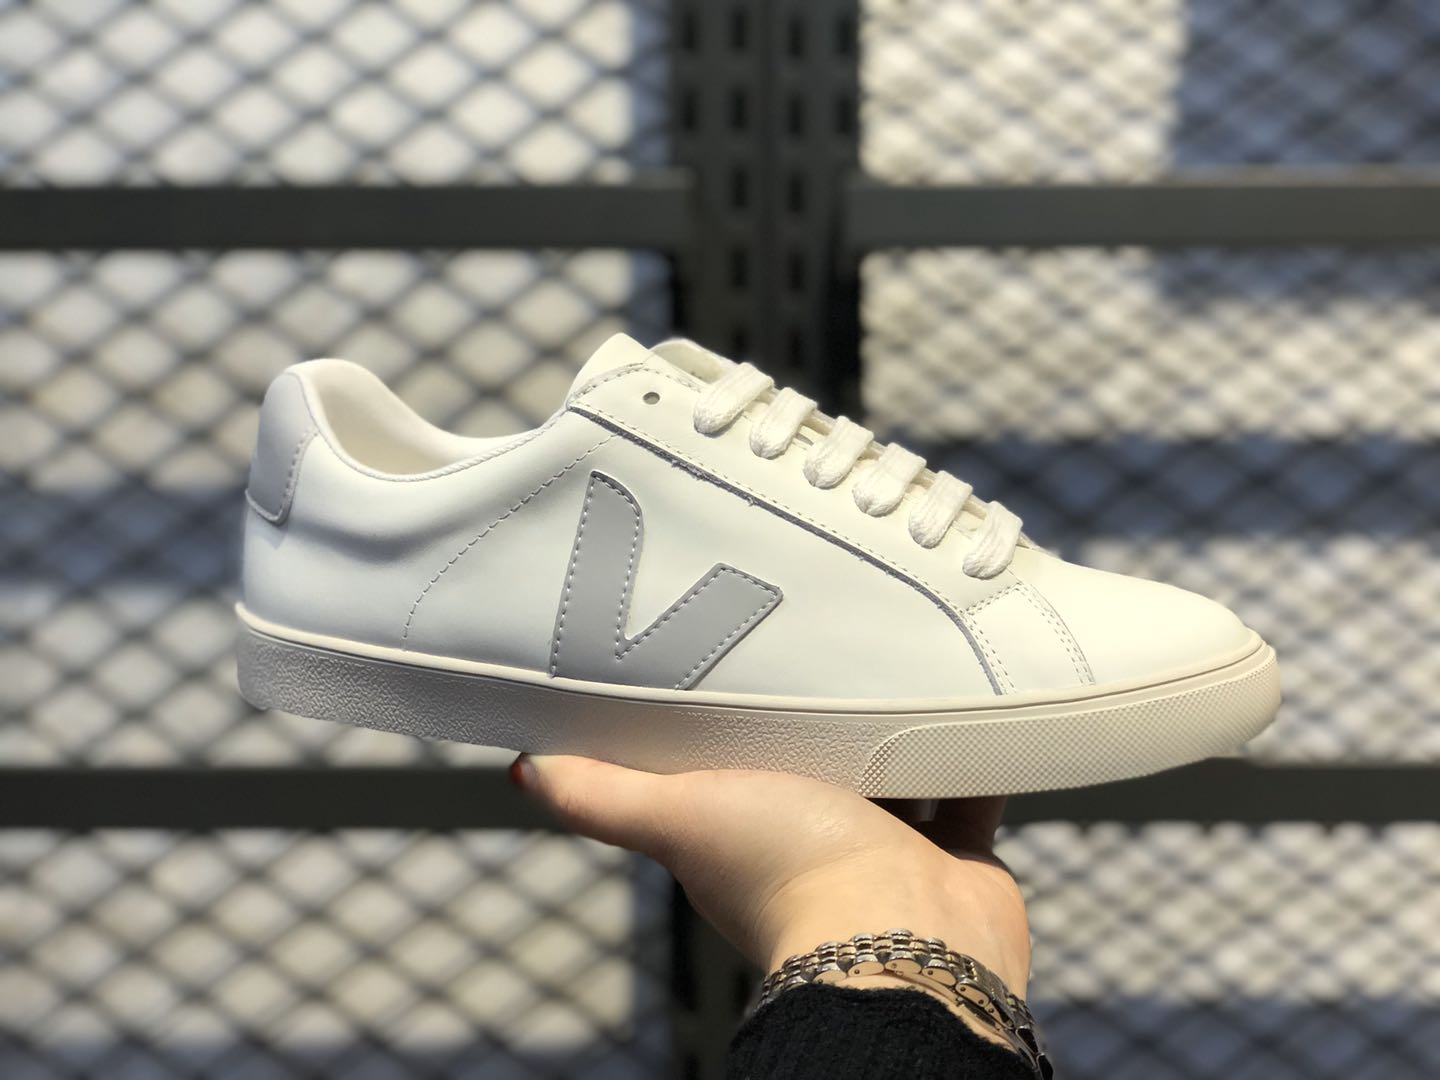 Veja Leather Extra Sneakers White/Light Bone Free Shipping